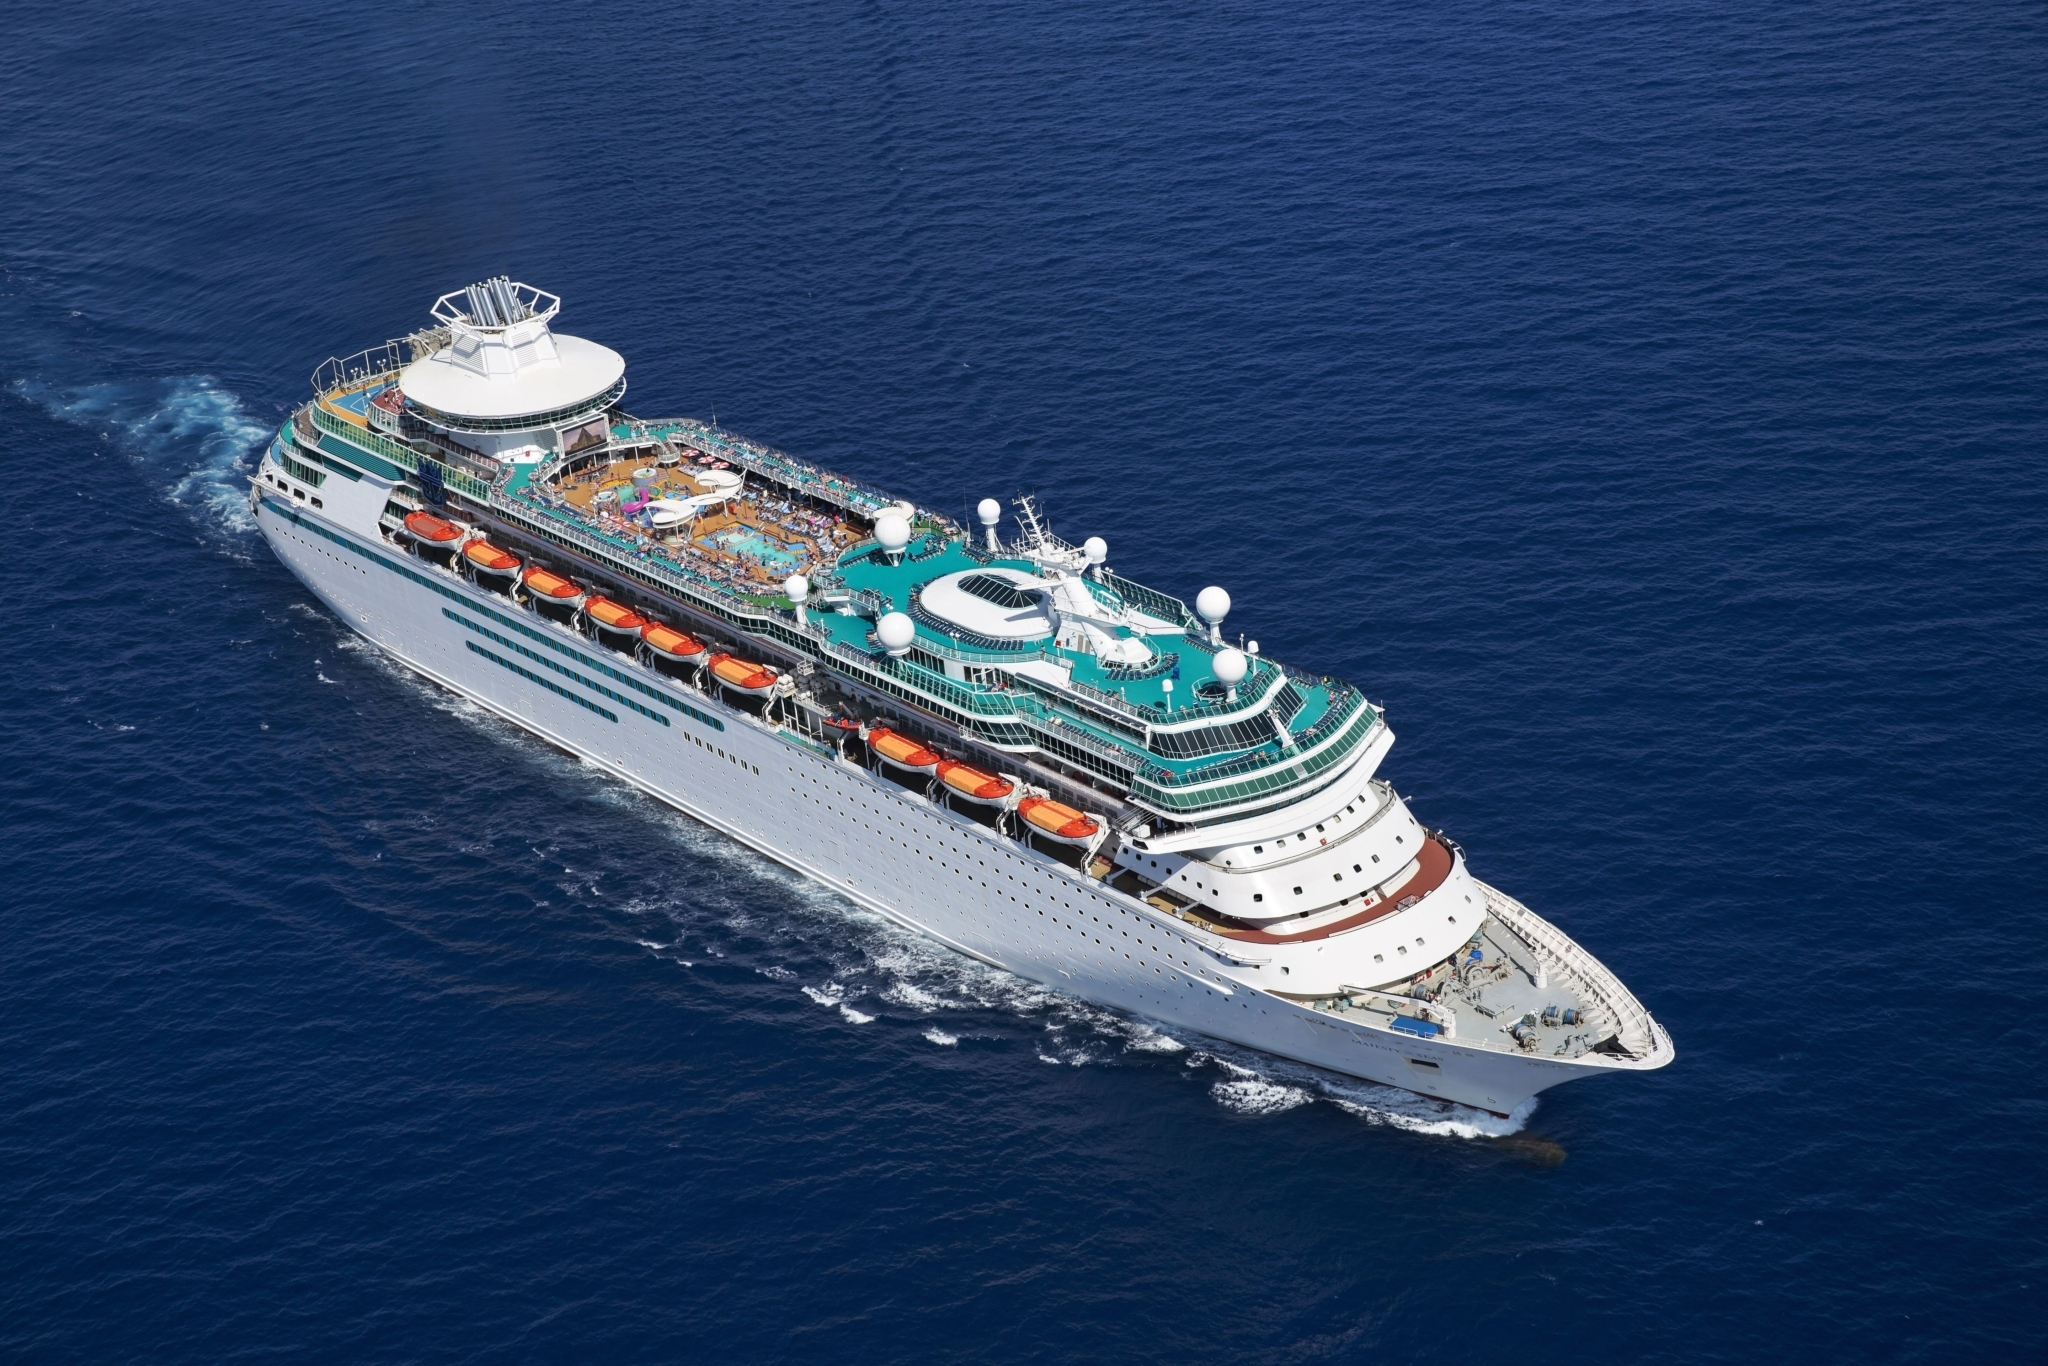 Royal Caribbean International Majesty of the Seas Aerial